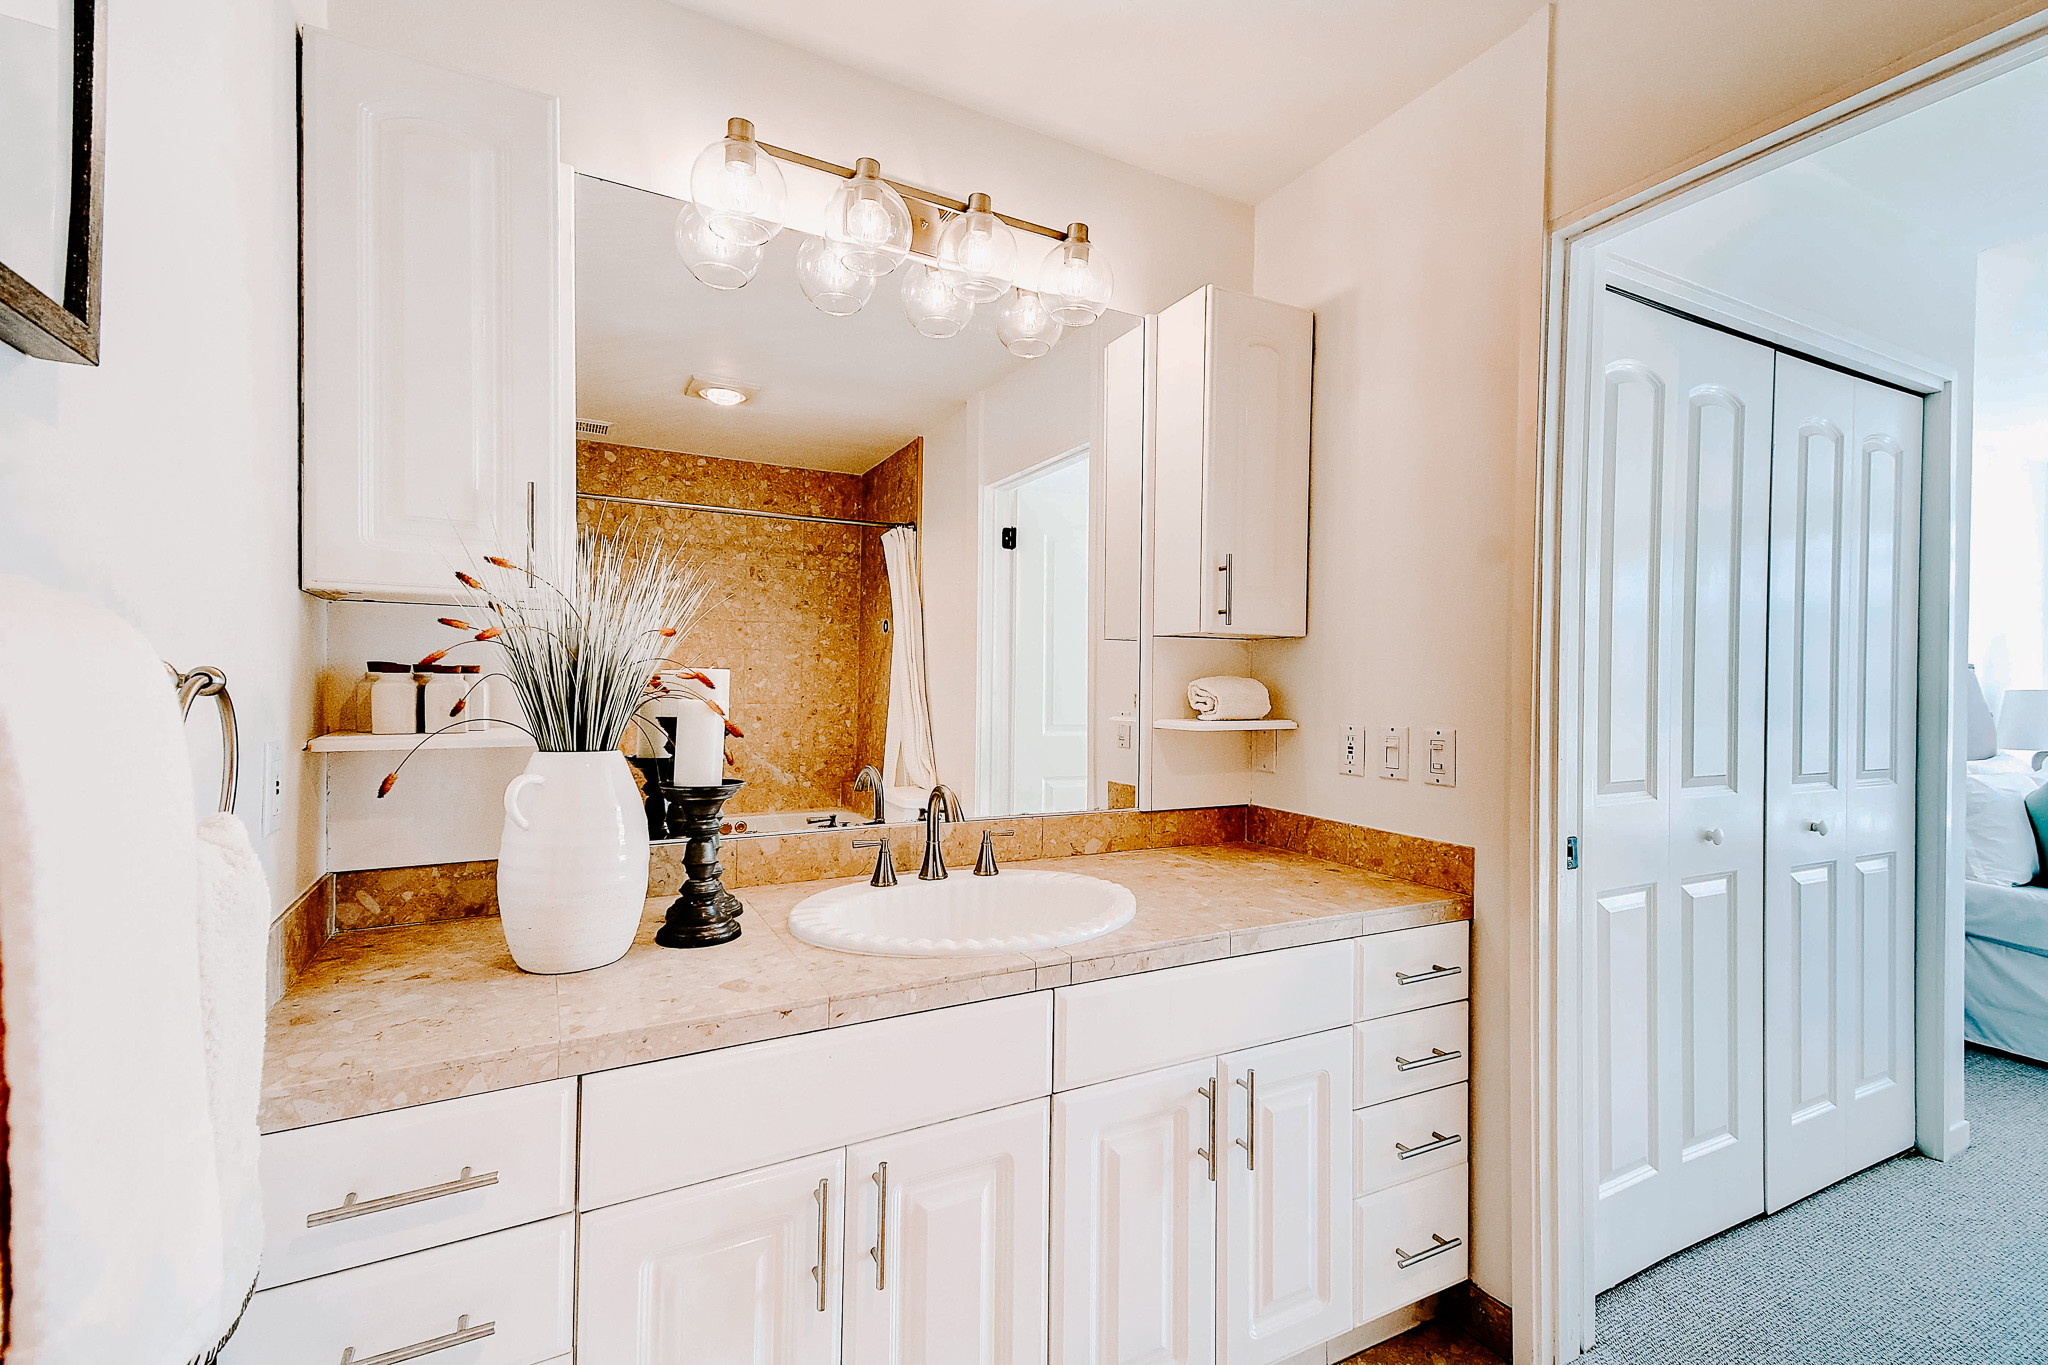 3223 Shelter Bay Avenue-29 Mill Valley Top Realtor - Allie Fornesi on Own Marin County's #1 Real Estate Team.jpg